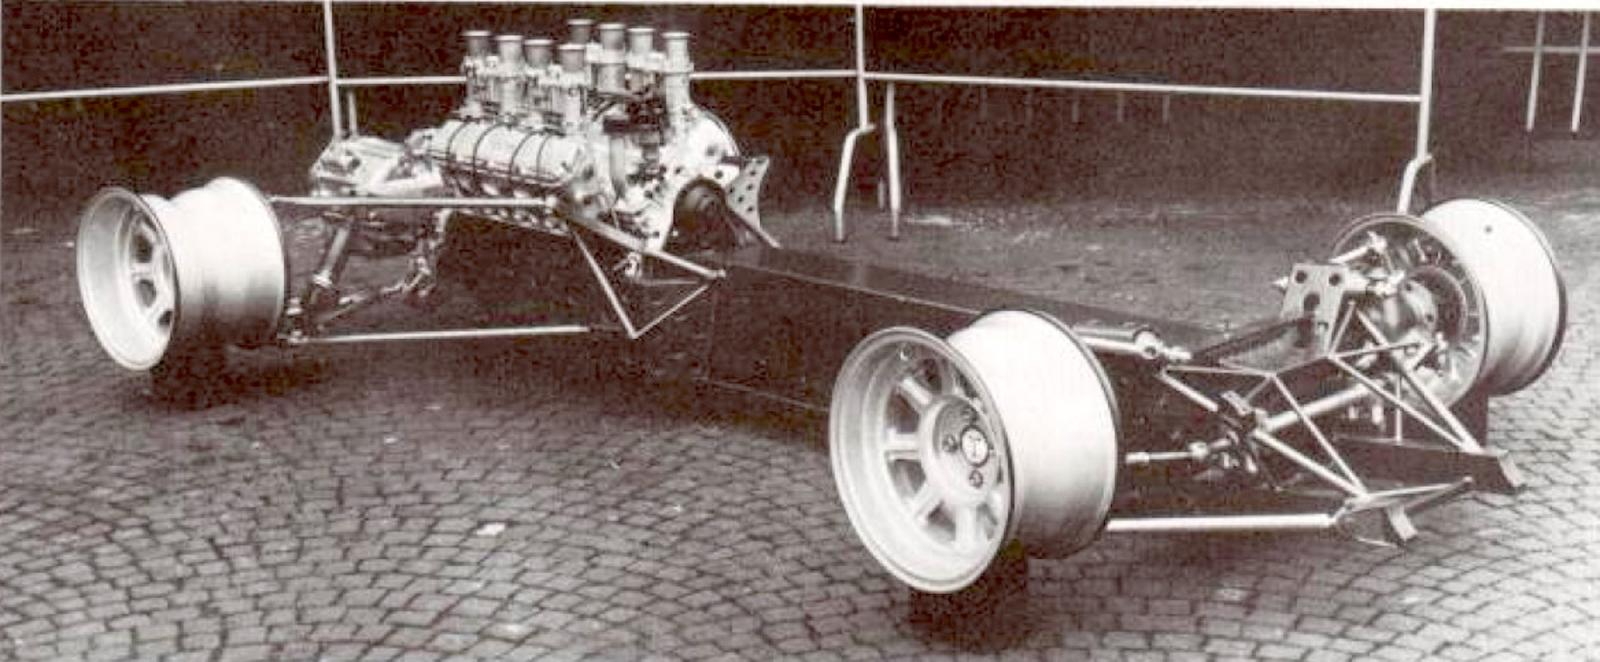 De Tomaso P70 chassis at Turin Motor Show in November 1965